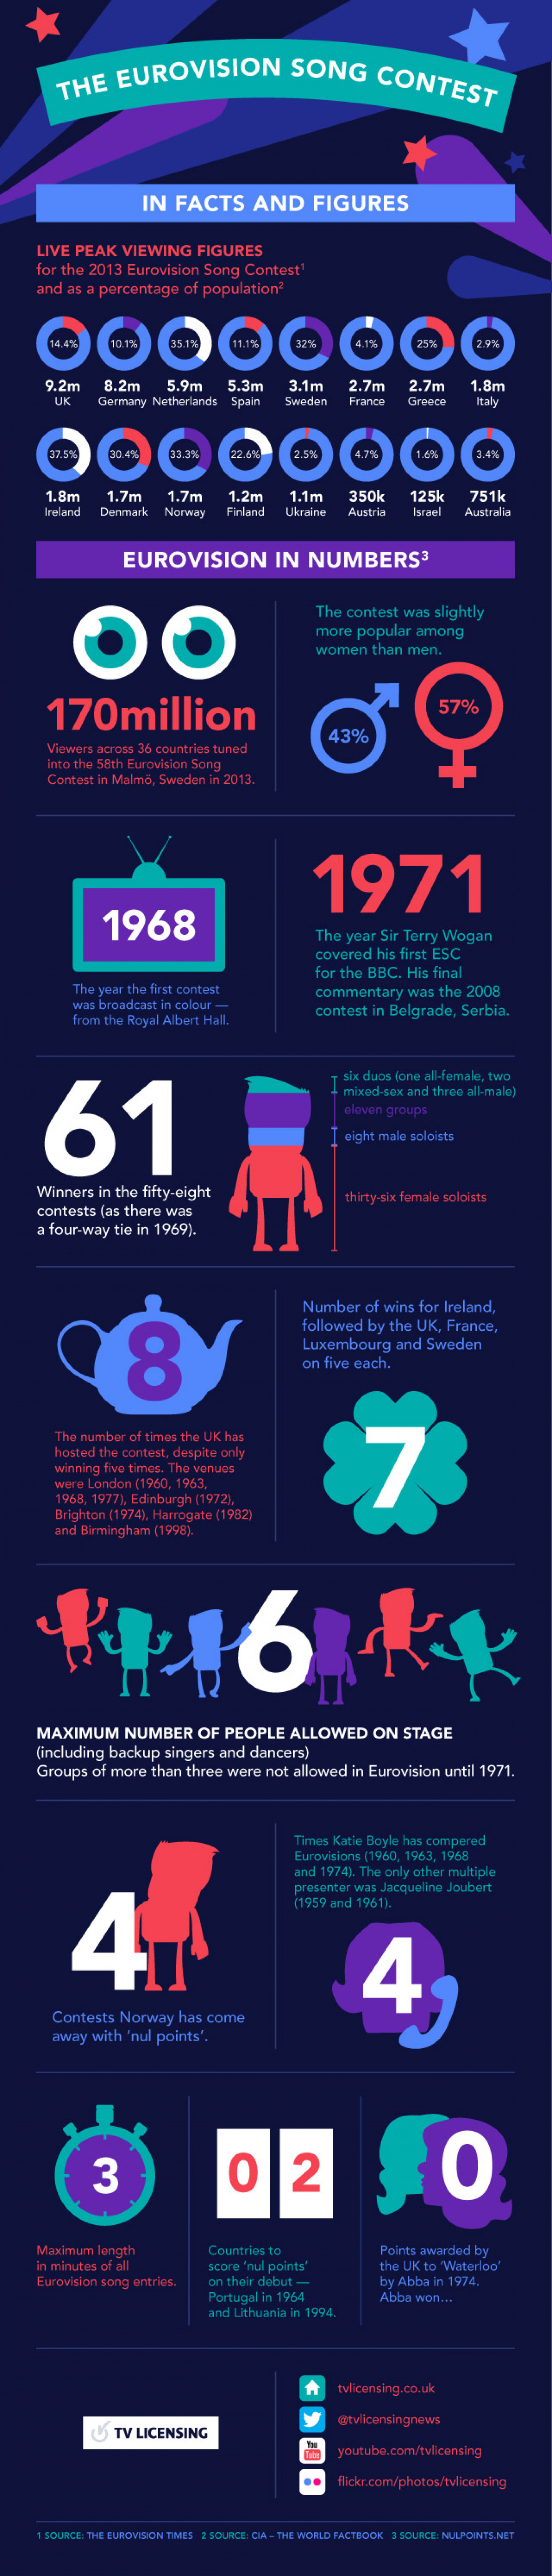 The Eurovision Song Contest in Facts And Figures Infographic